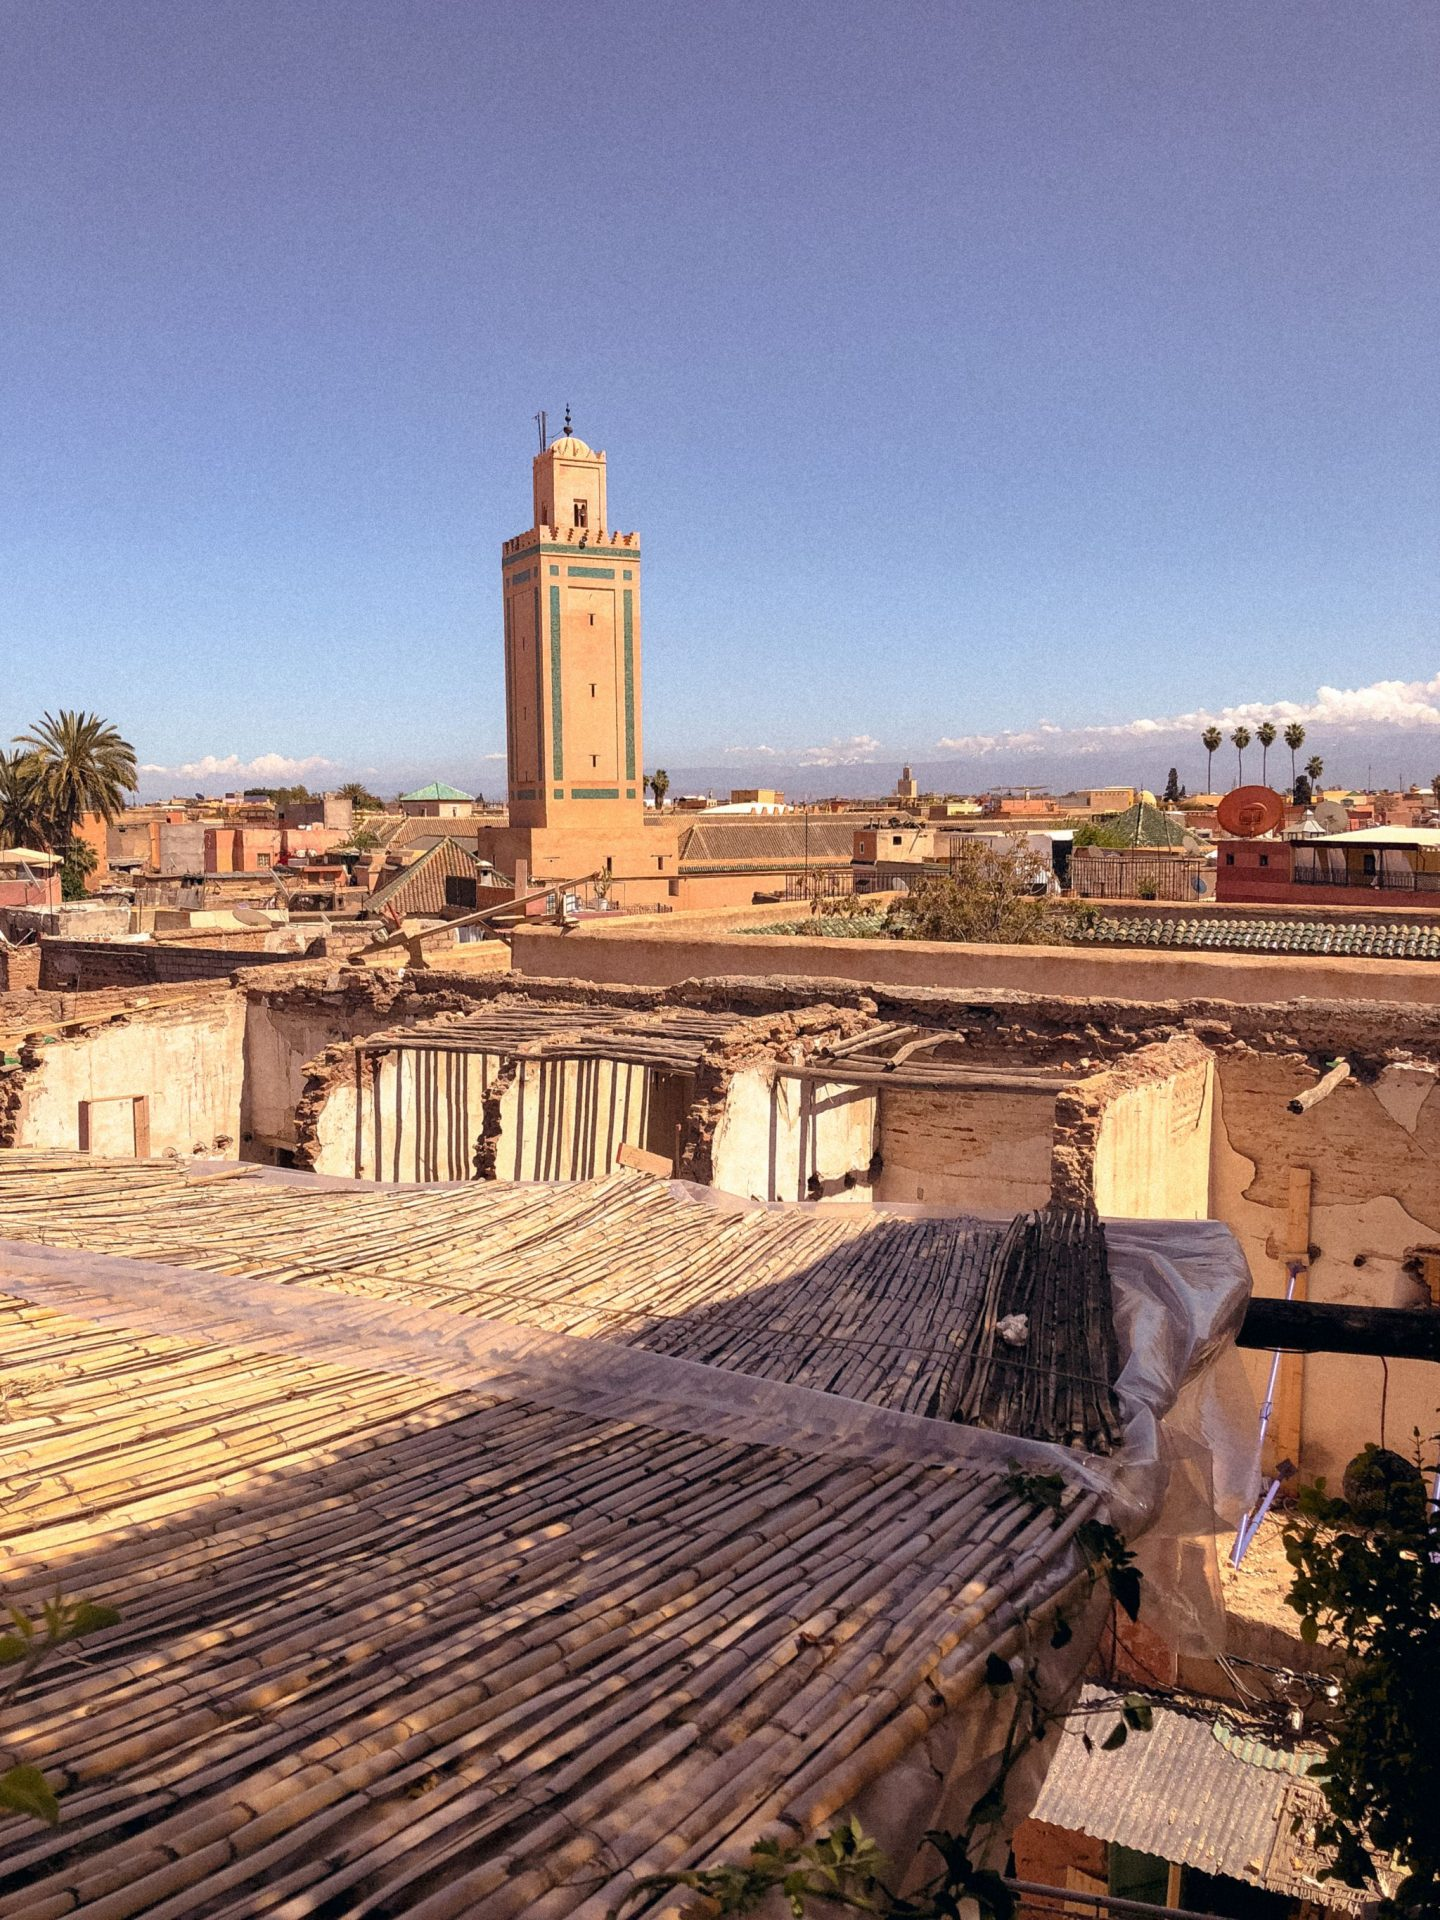 Mosque in Marrakesh, view from rooftop terrace